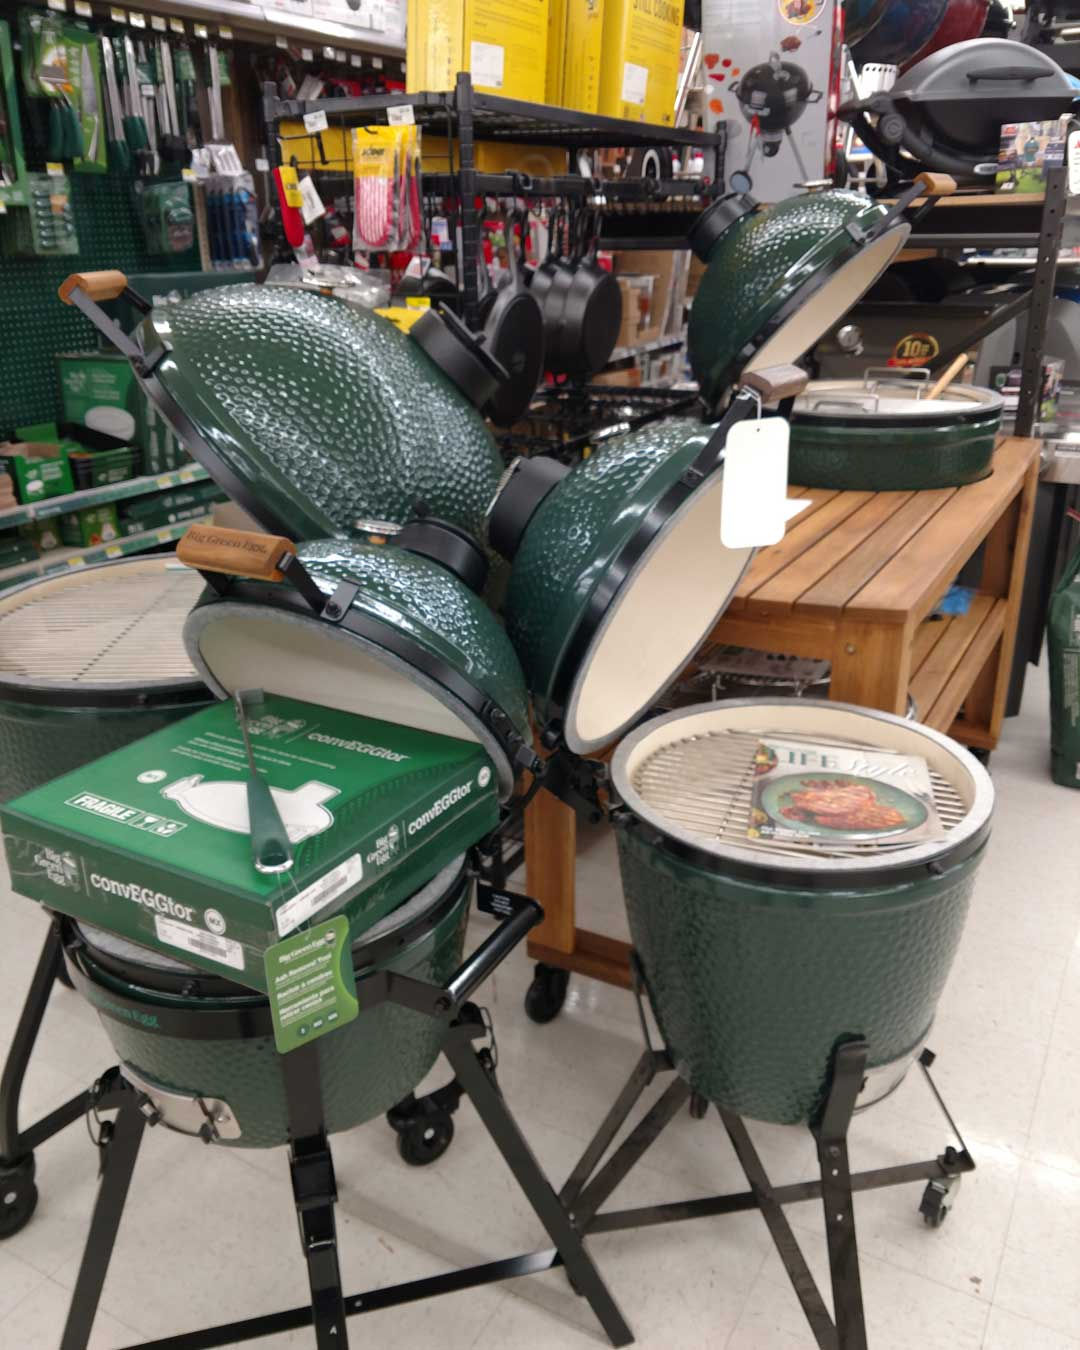 Big Green Egg Grills In Stock